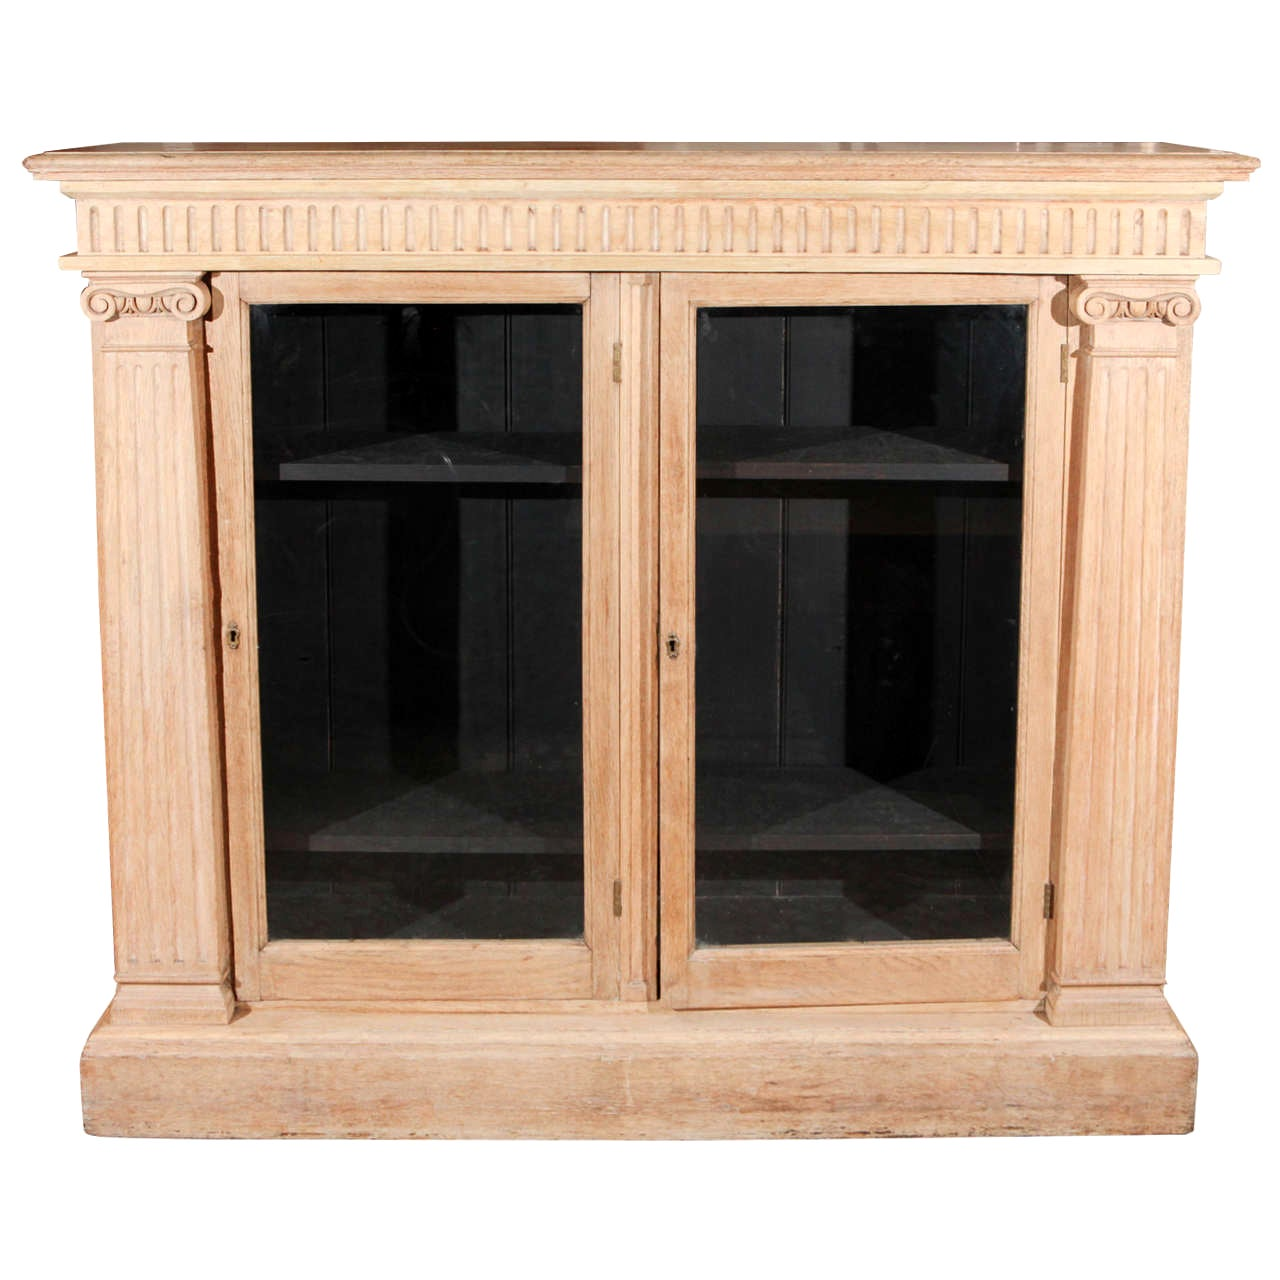 Late 19th Century English Oak Bookcase with Glass Doors